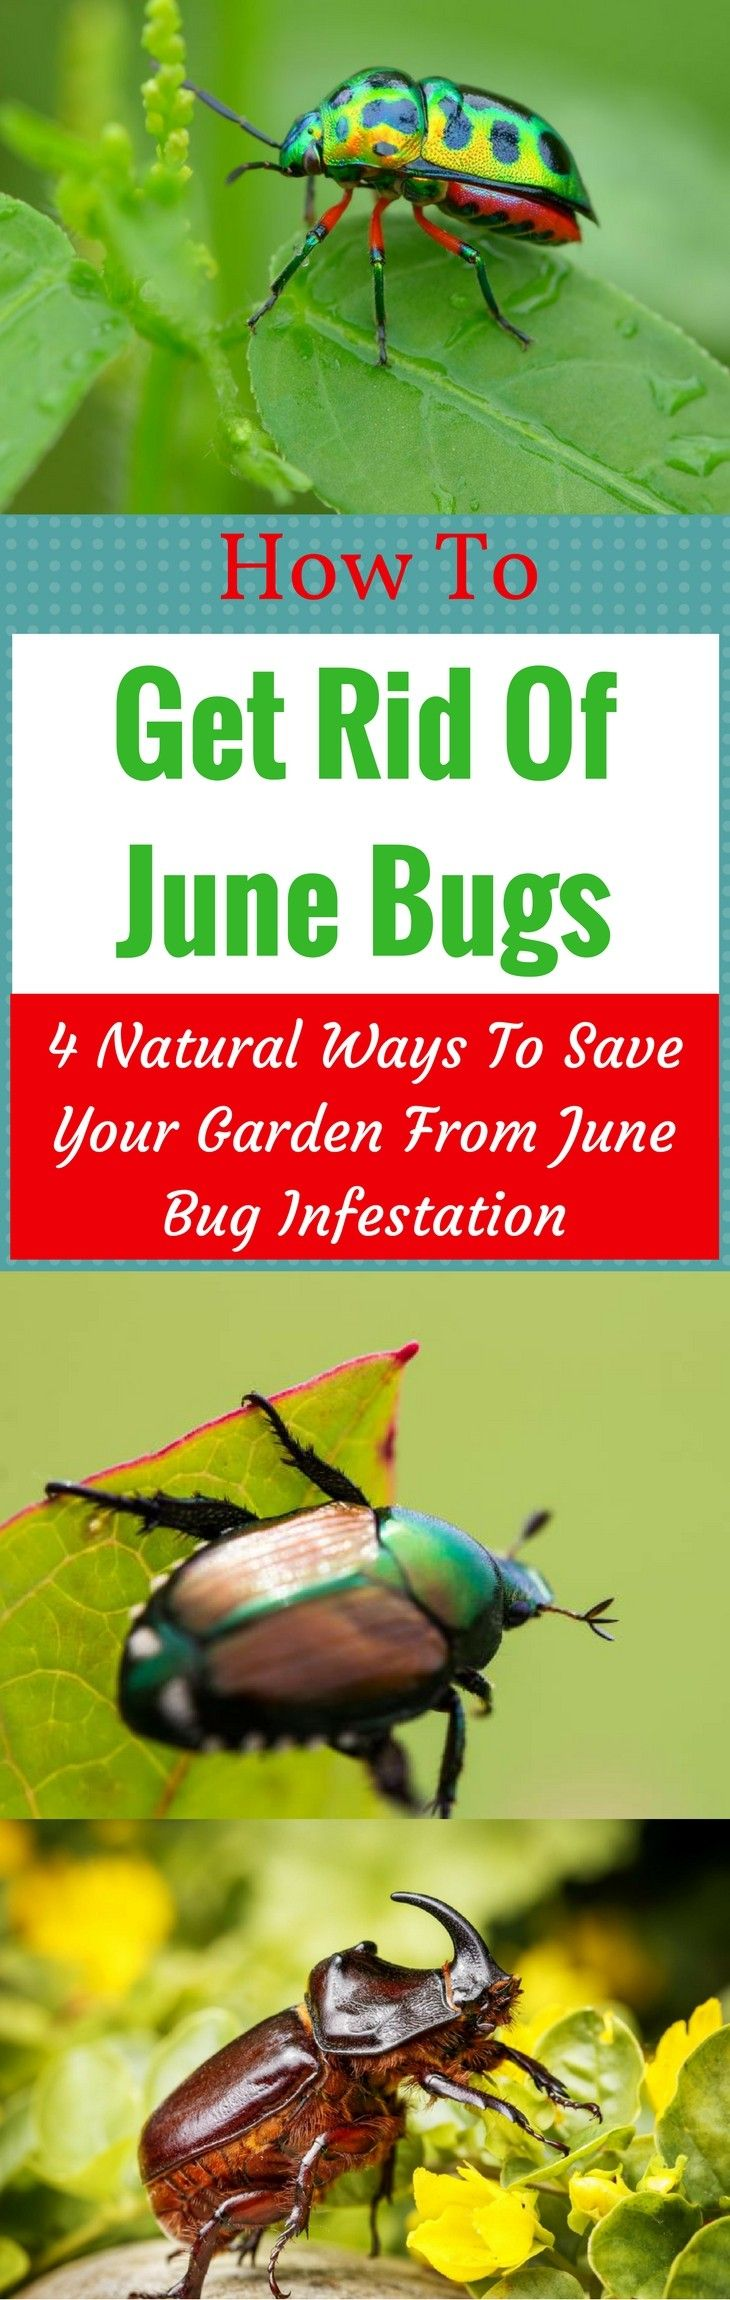 How to get rid of june bugs 4 natural ways to save your